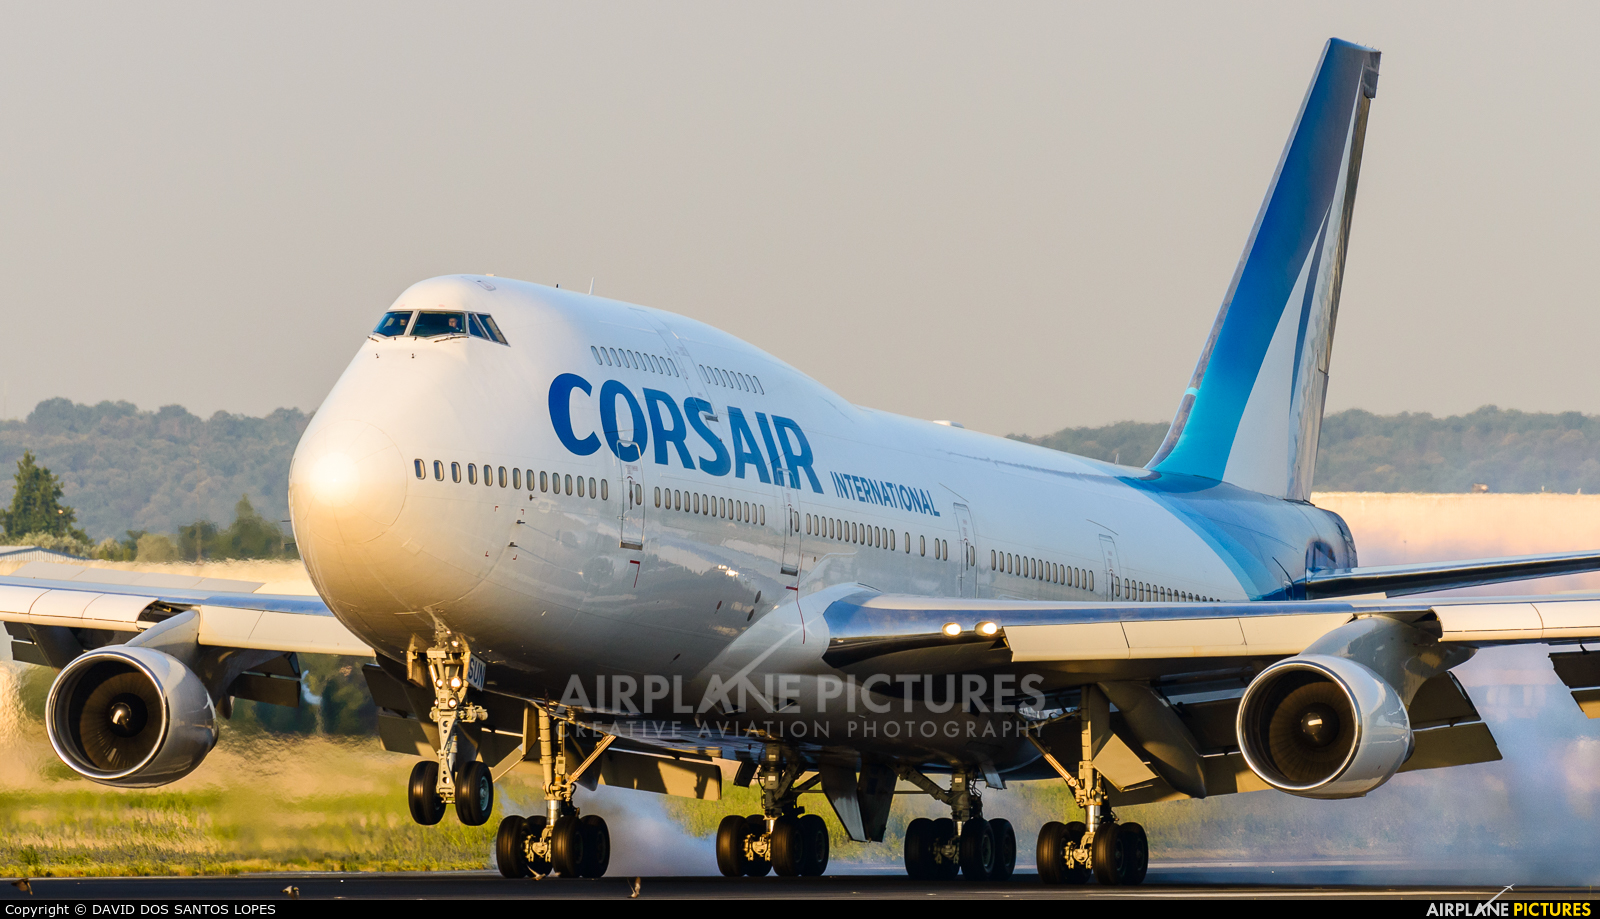 Corsair / Corsair Intl F-HSUN aircraft at Paris - Orly